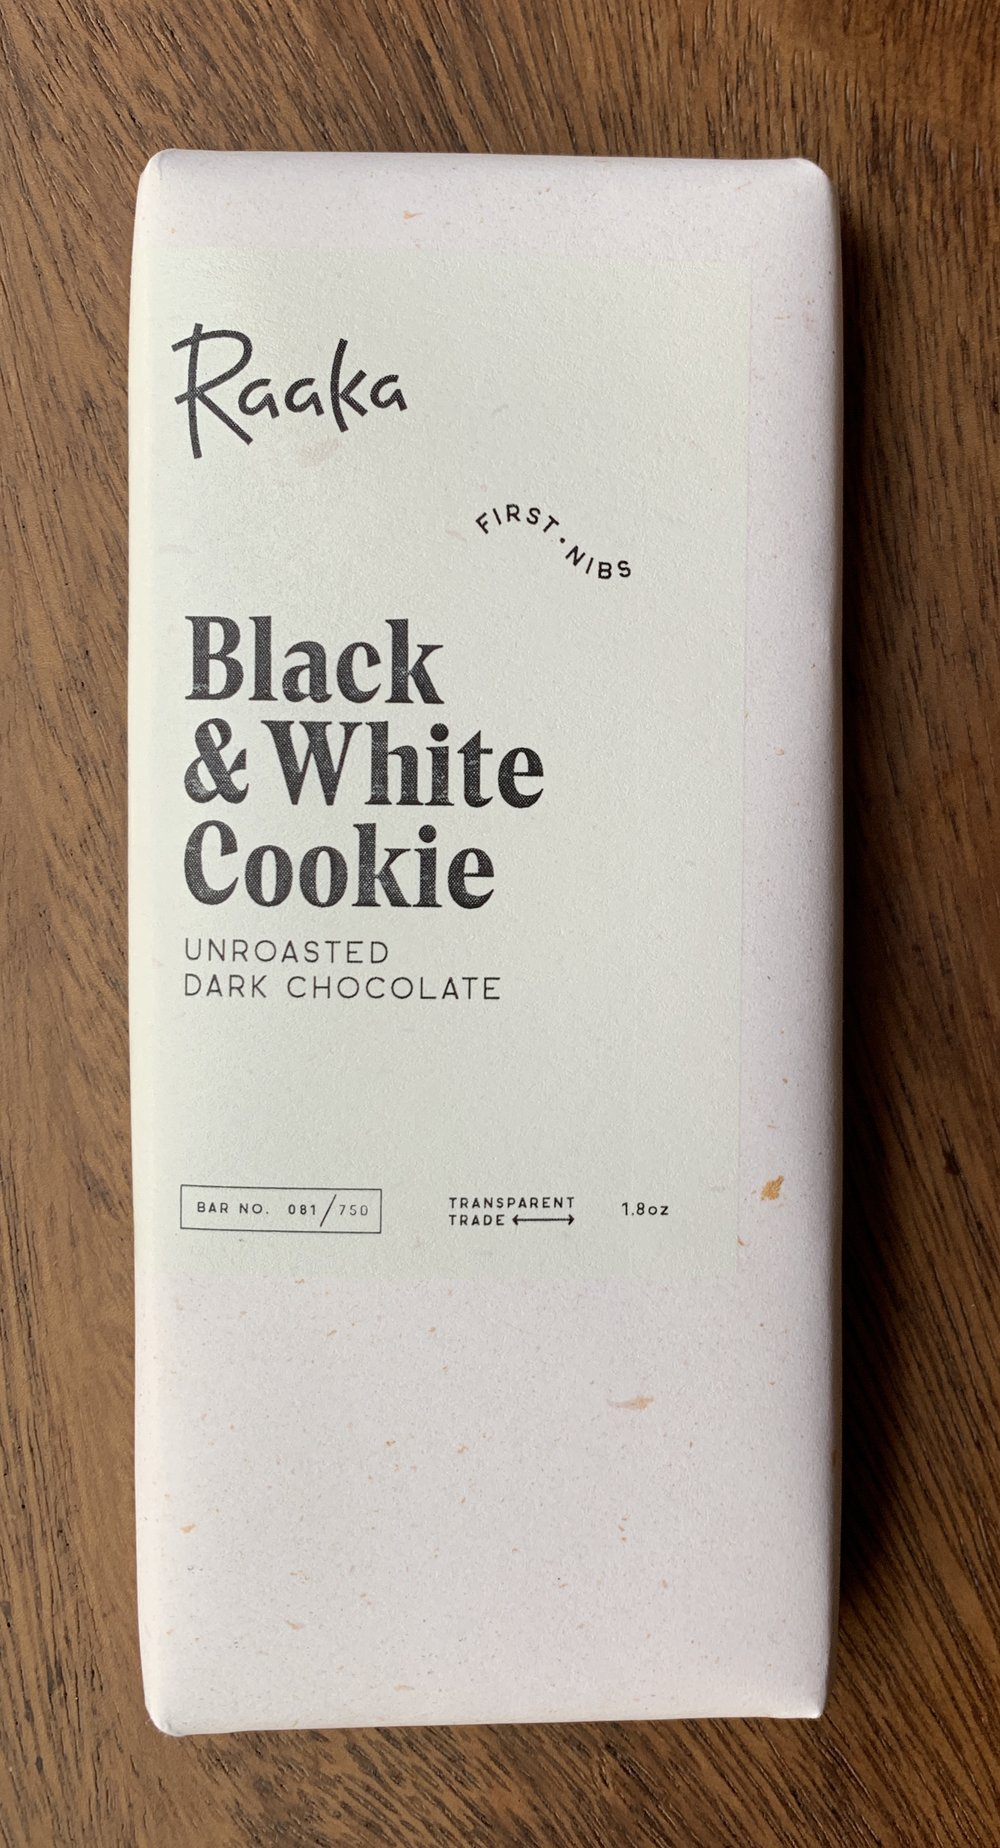 Raaka - Black-Black Cherry, fresh cacao , bright finish. White- Soft temper, coconut, strong cacao butter